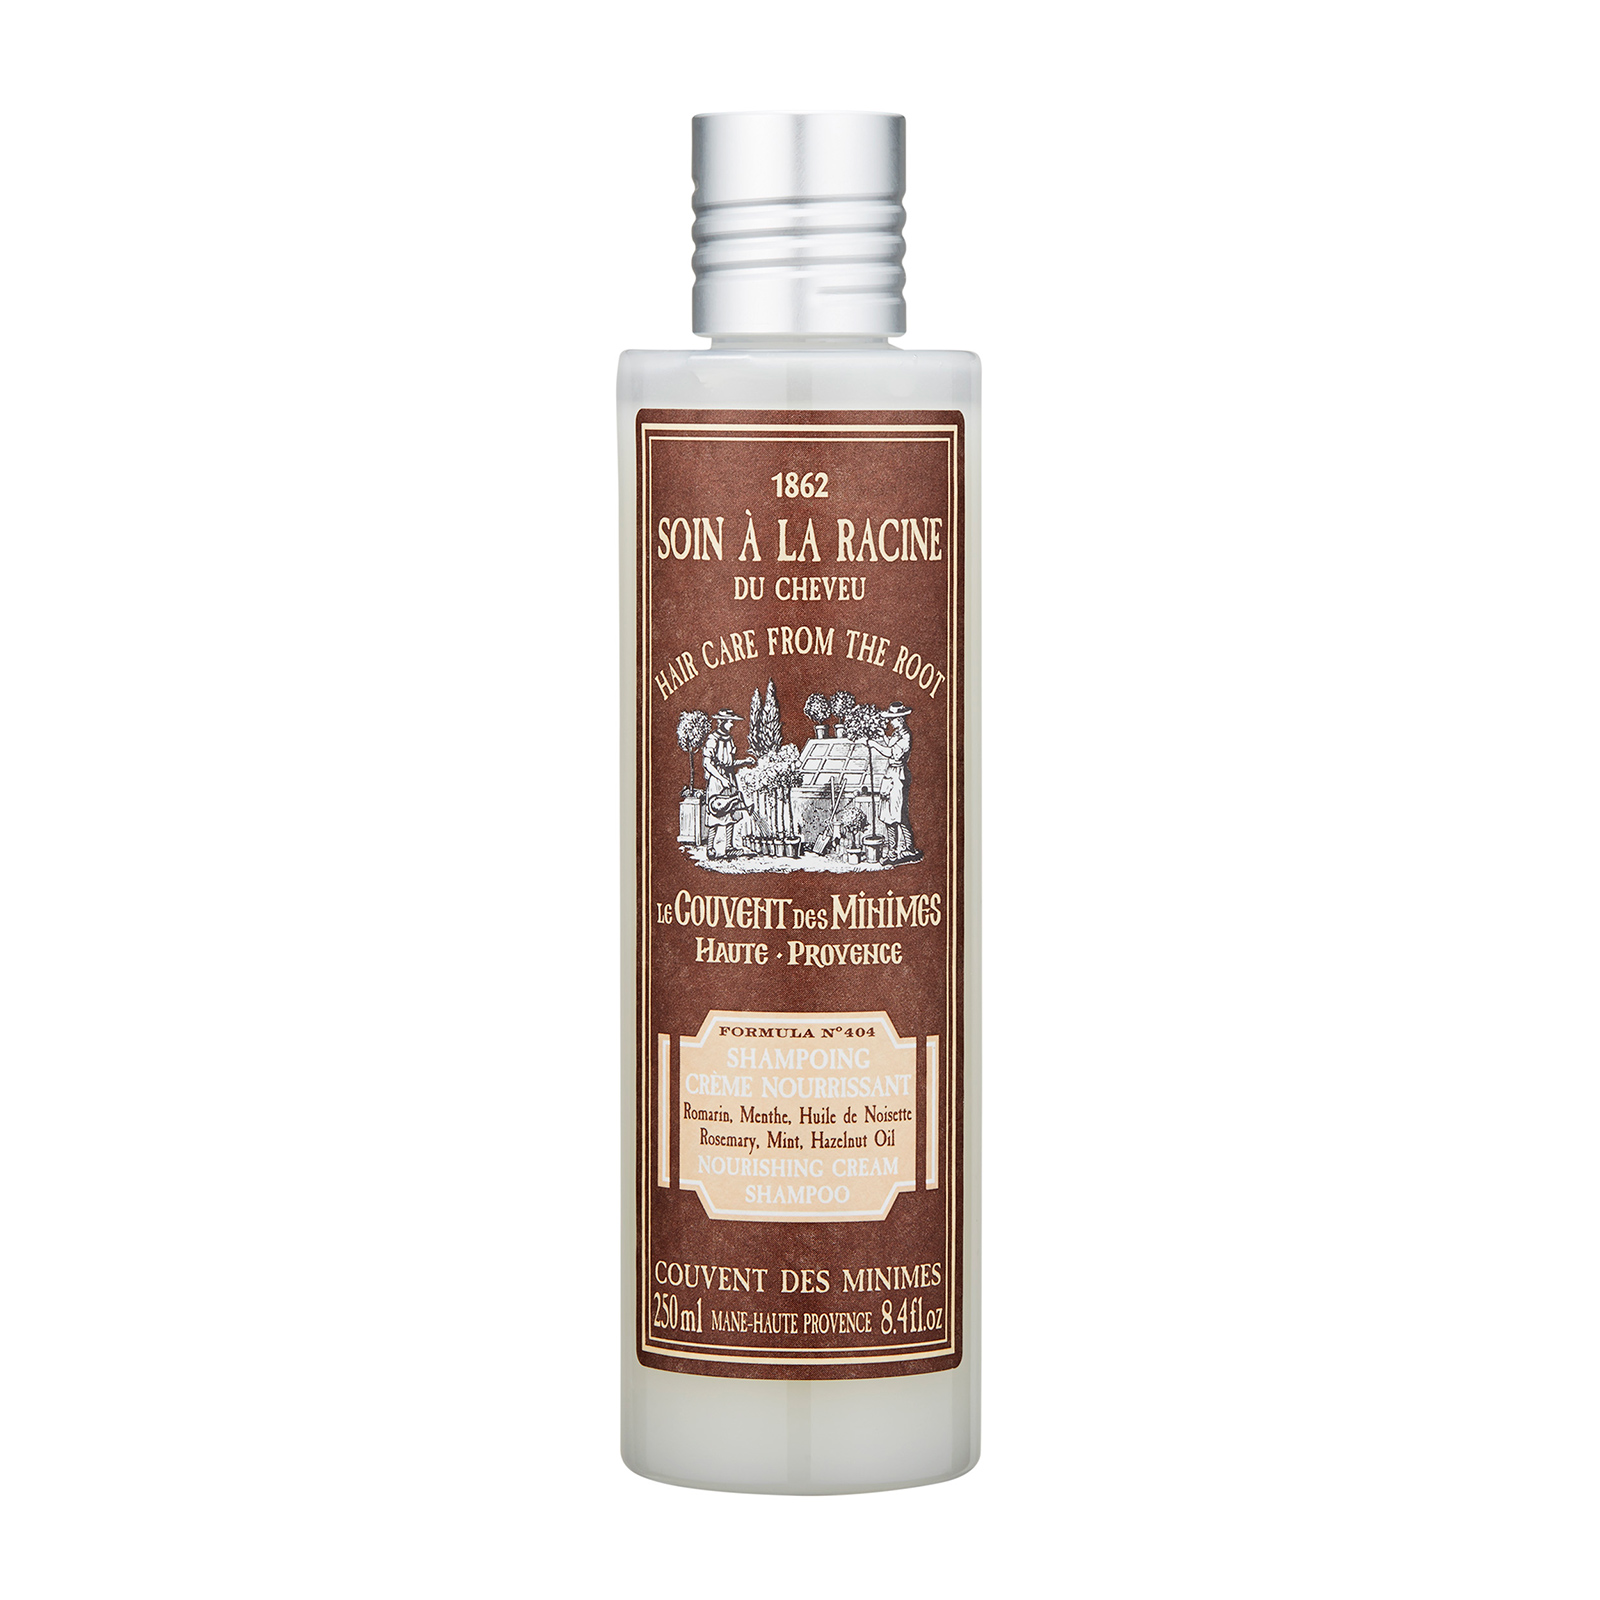 Le Couvent des Minimes Hair Care from the Root Nourishing Cream Shampoo 8.4oz, 250ml